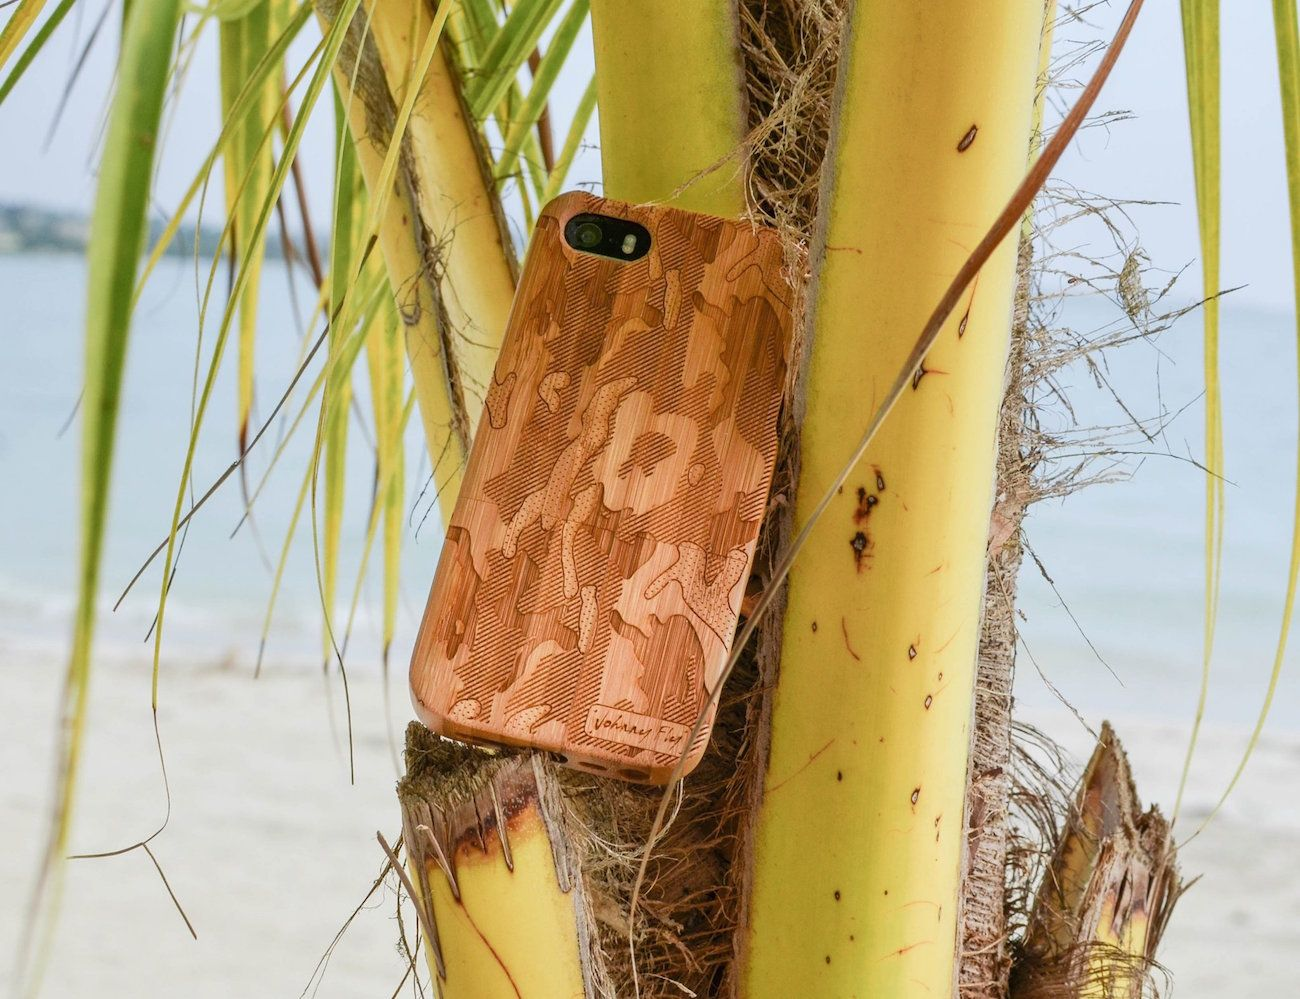 Give your smartphones a naturally inclined makeover in the form of this Camo Print Wooden Phone Case by Johnny Fly.